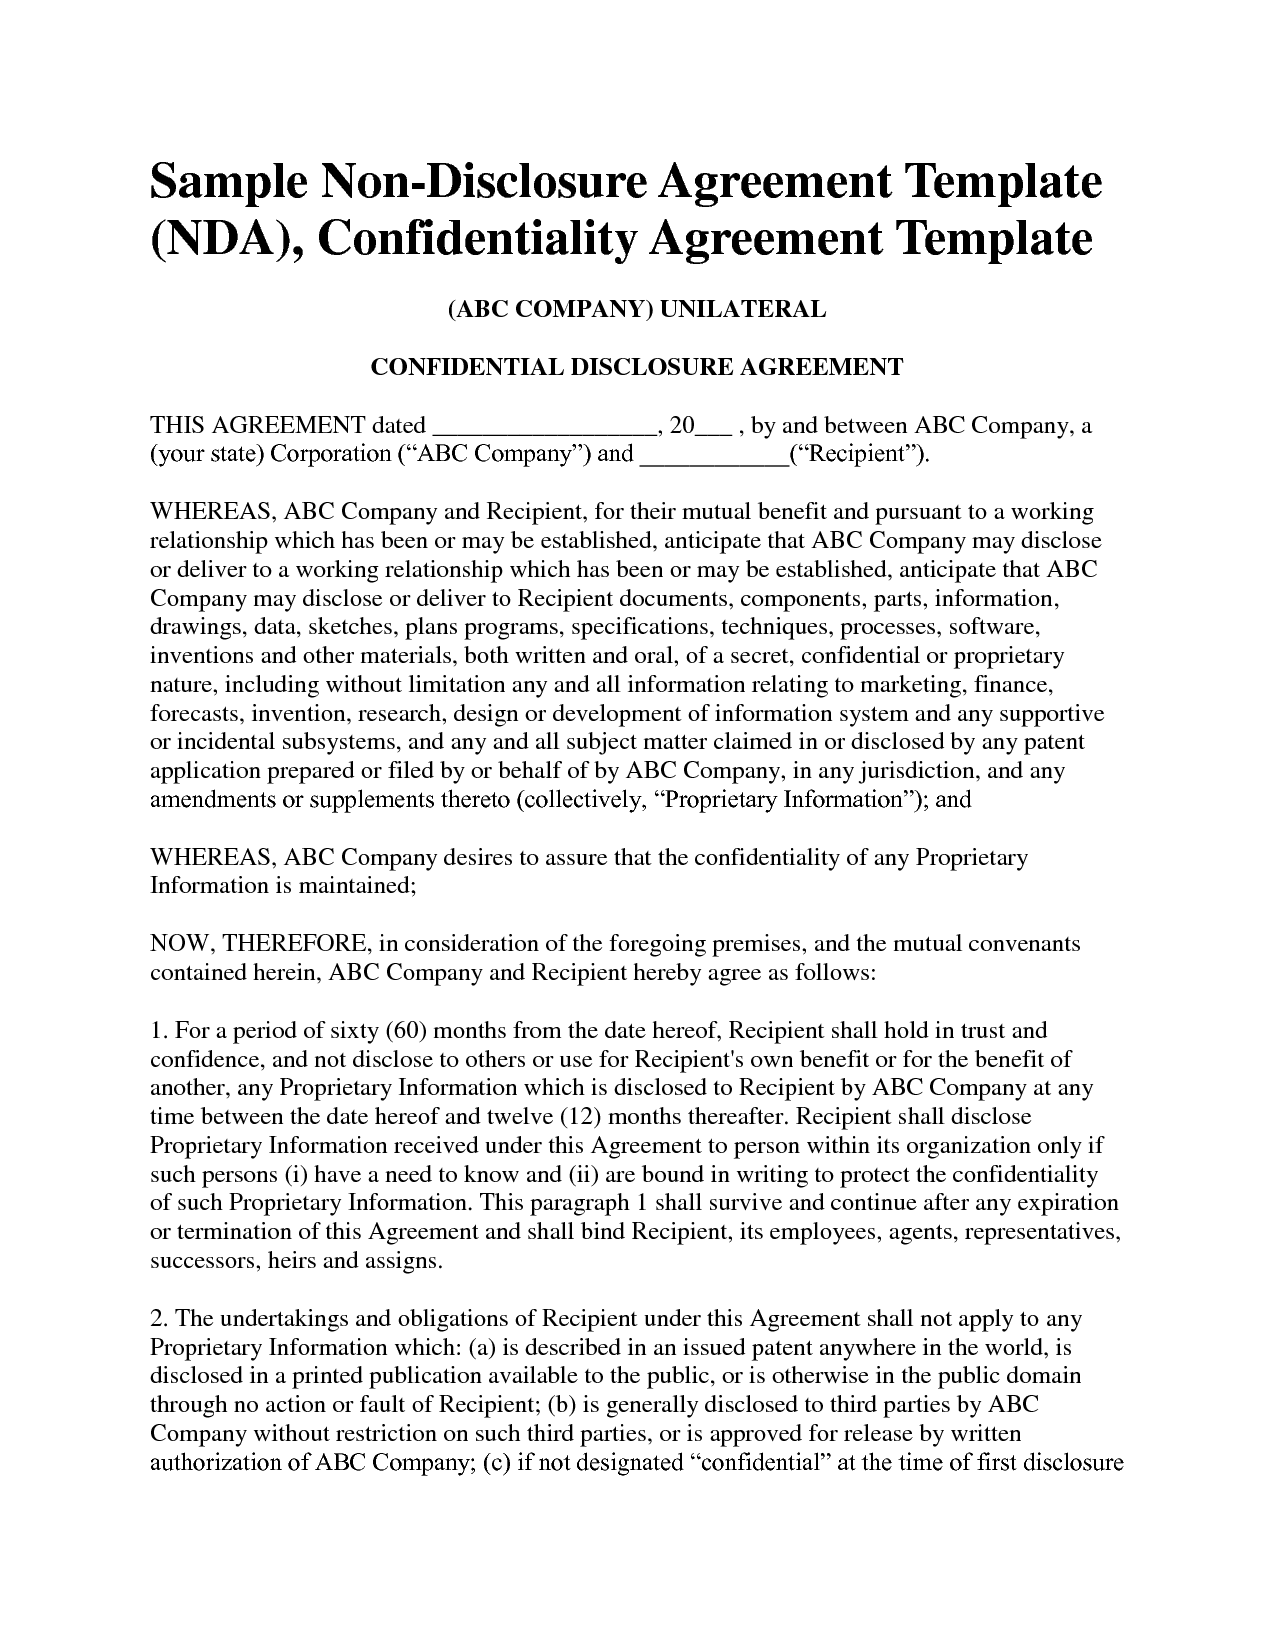 Non disclosure agreement template free sample nda template mvrsqrn non disclosure agreement template free sample nda template mvrsqrn nda sample cheaphphosting Choice Image